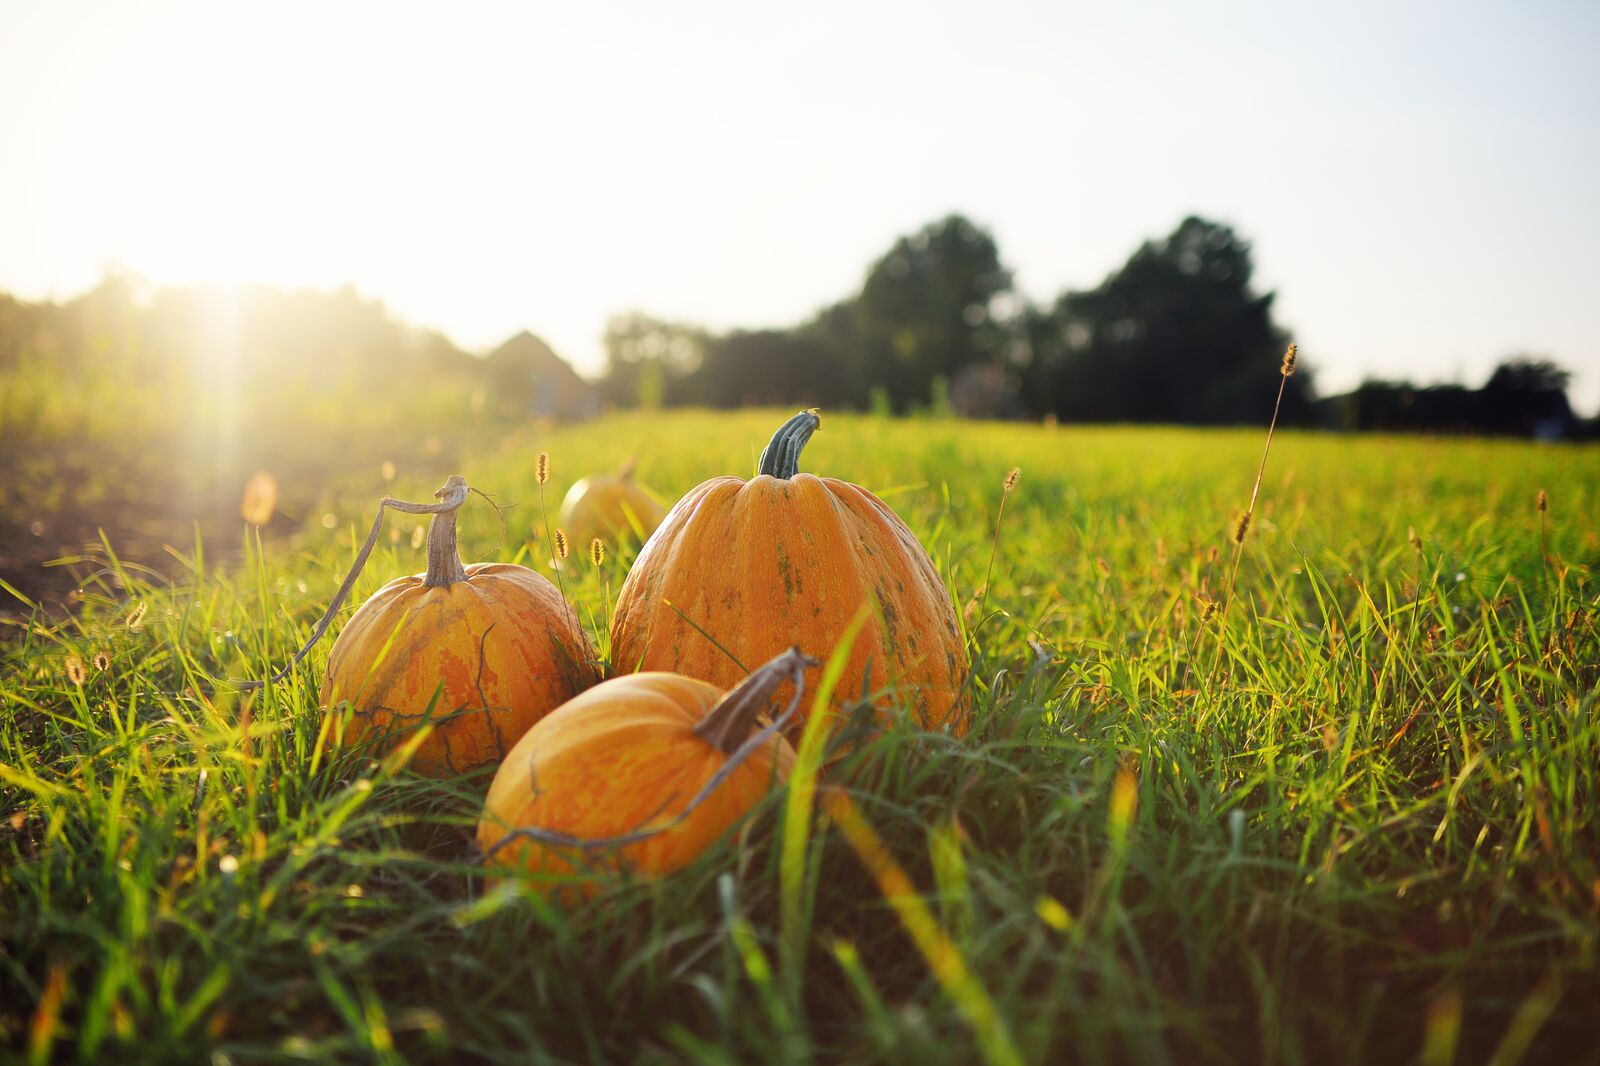 Pumpkins-in-field.jpg